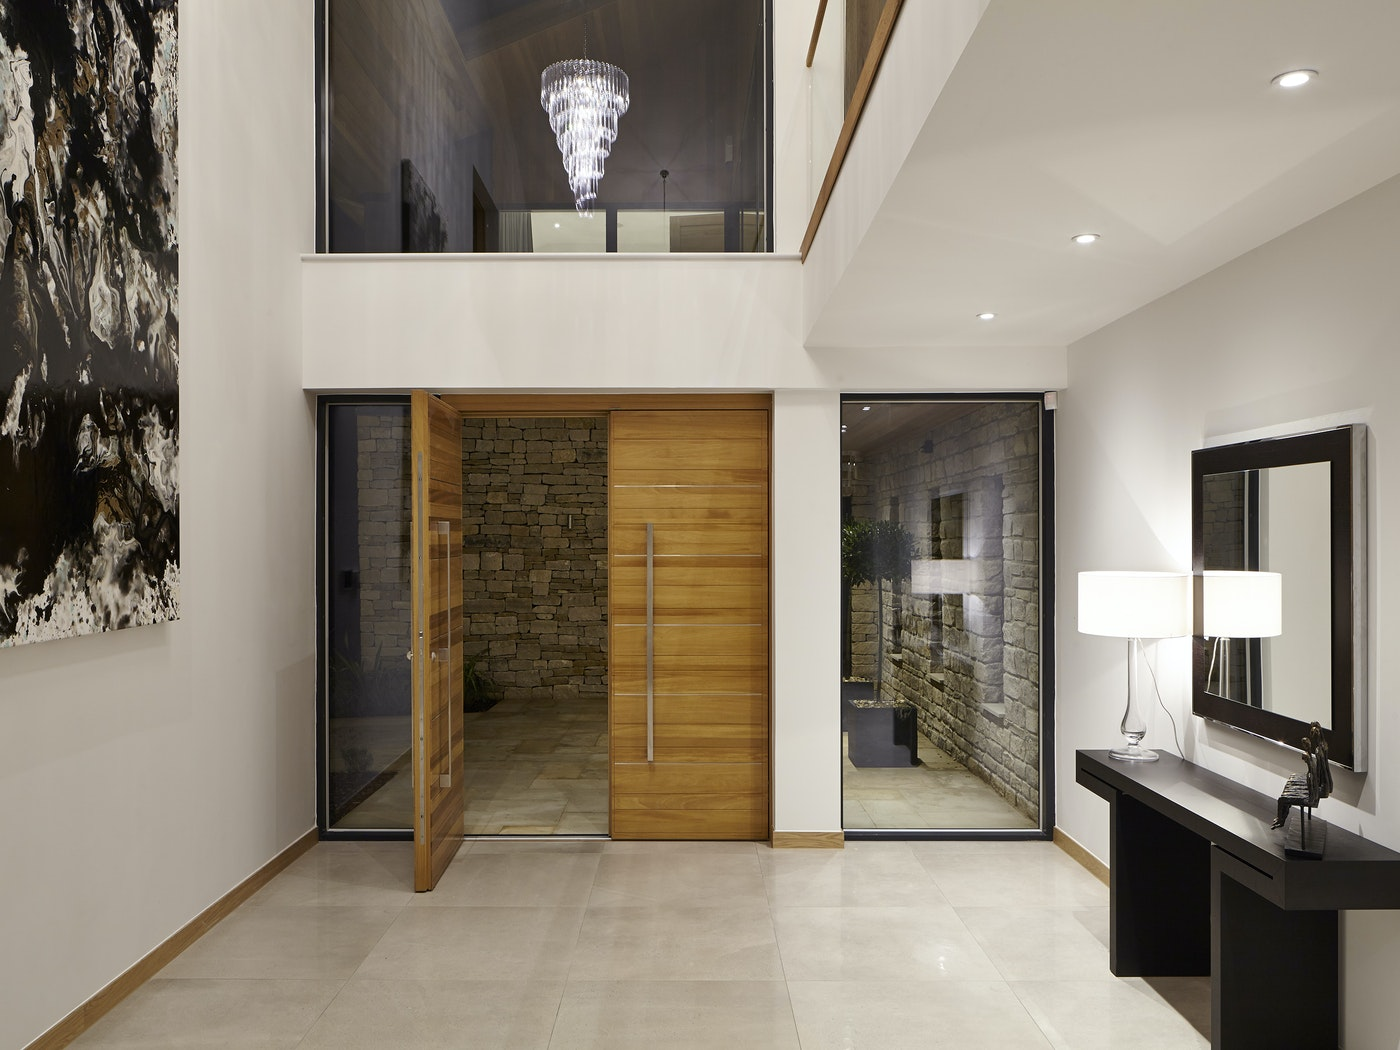 The grand double front doors open into an equally grand internal entrance